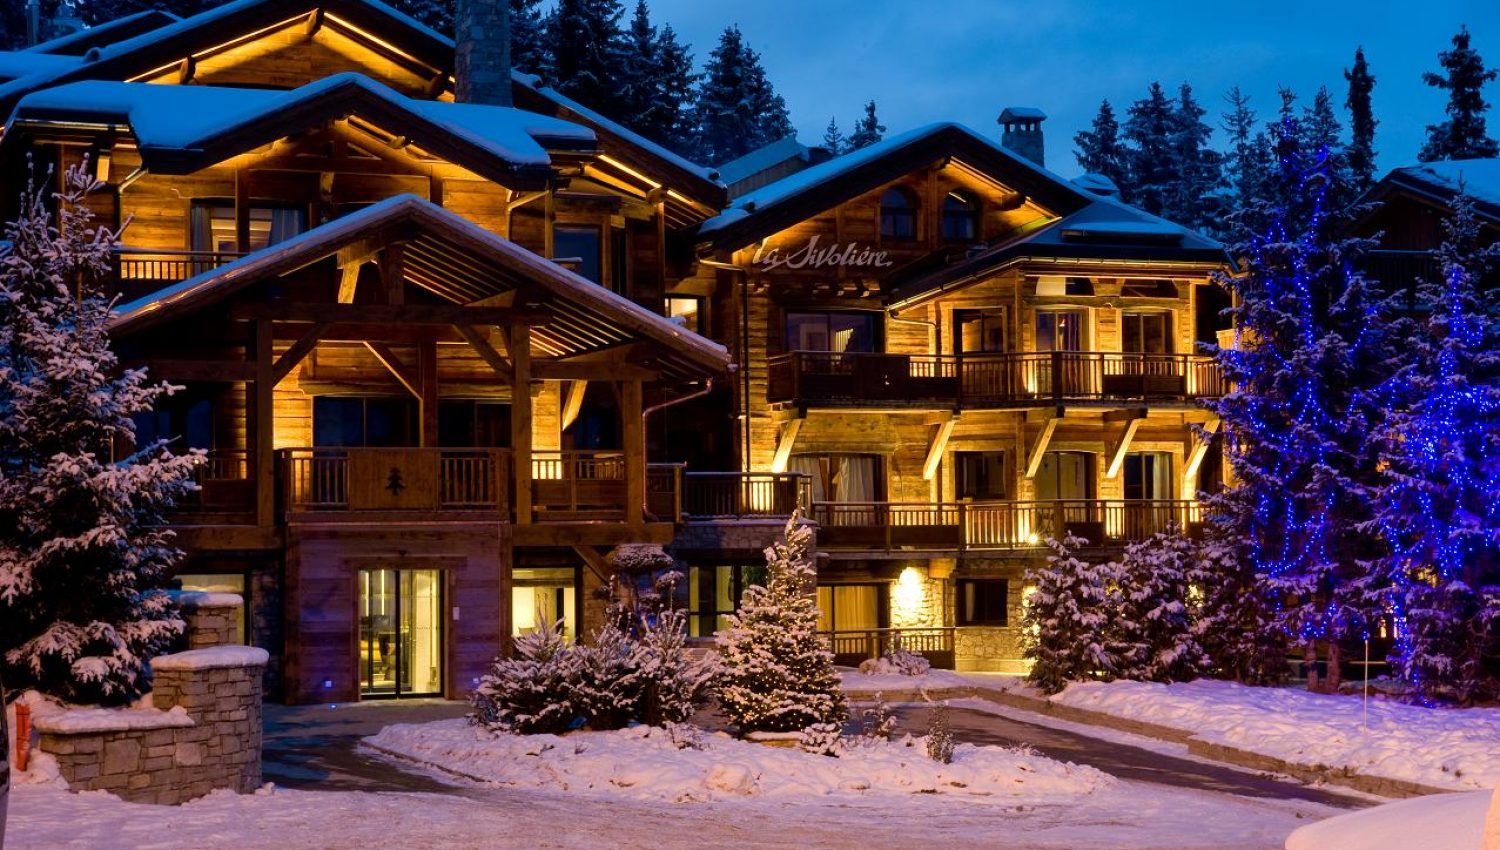 courchevel-1850-hotel-sivoliere-1